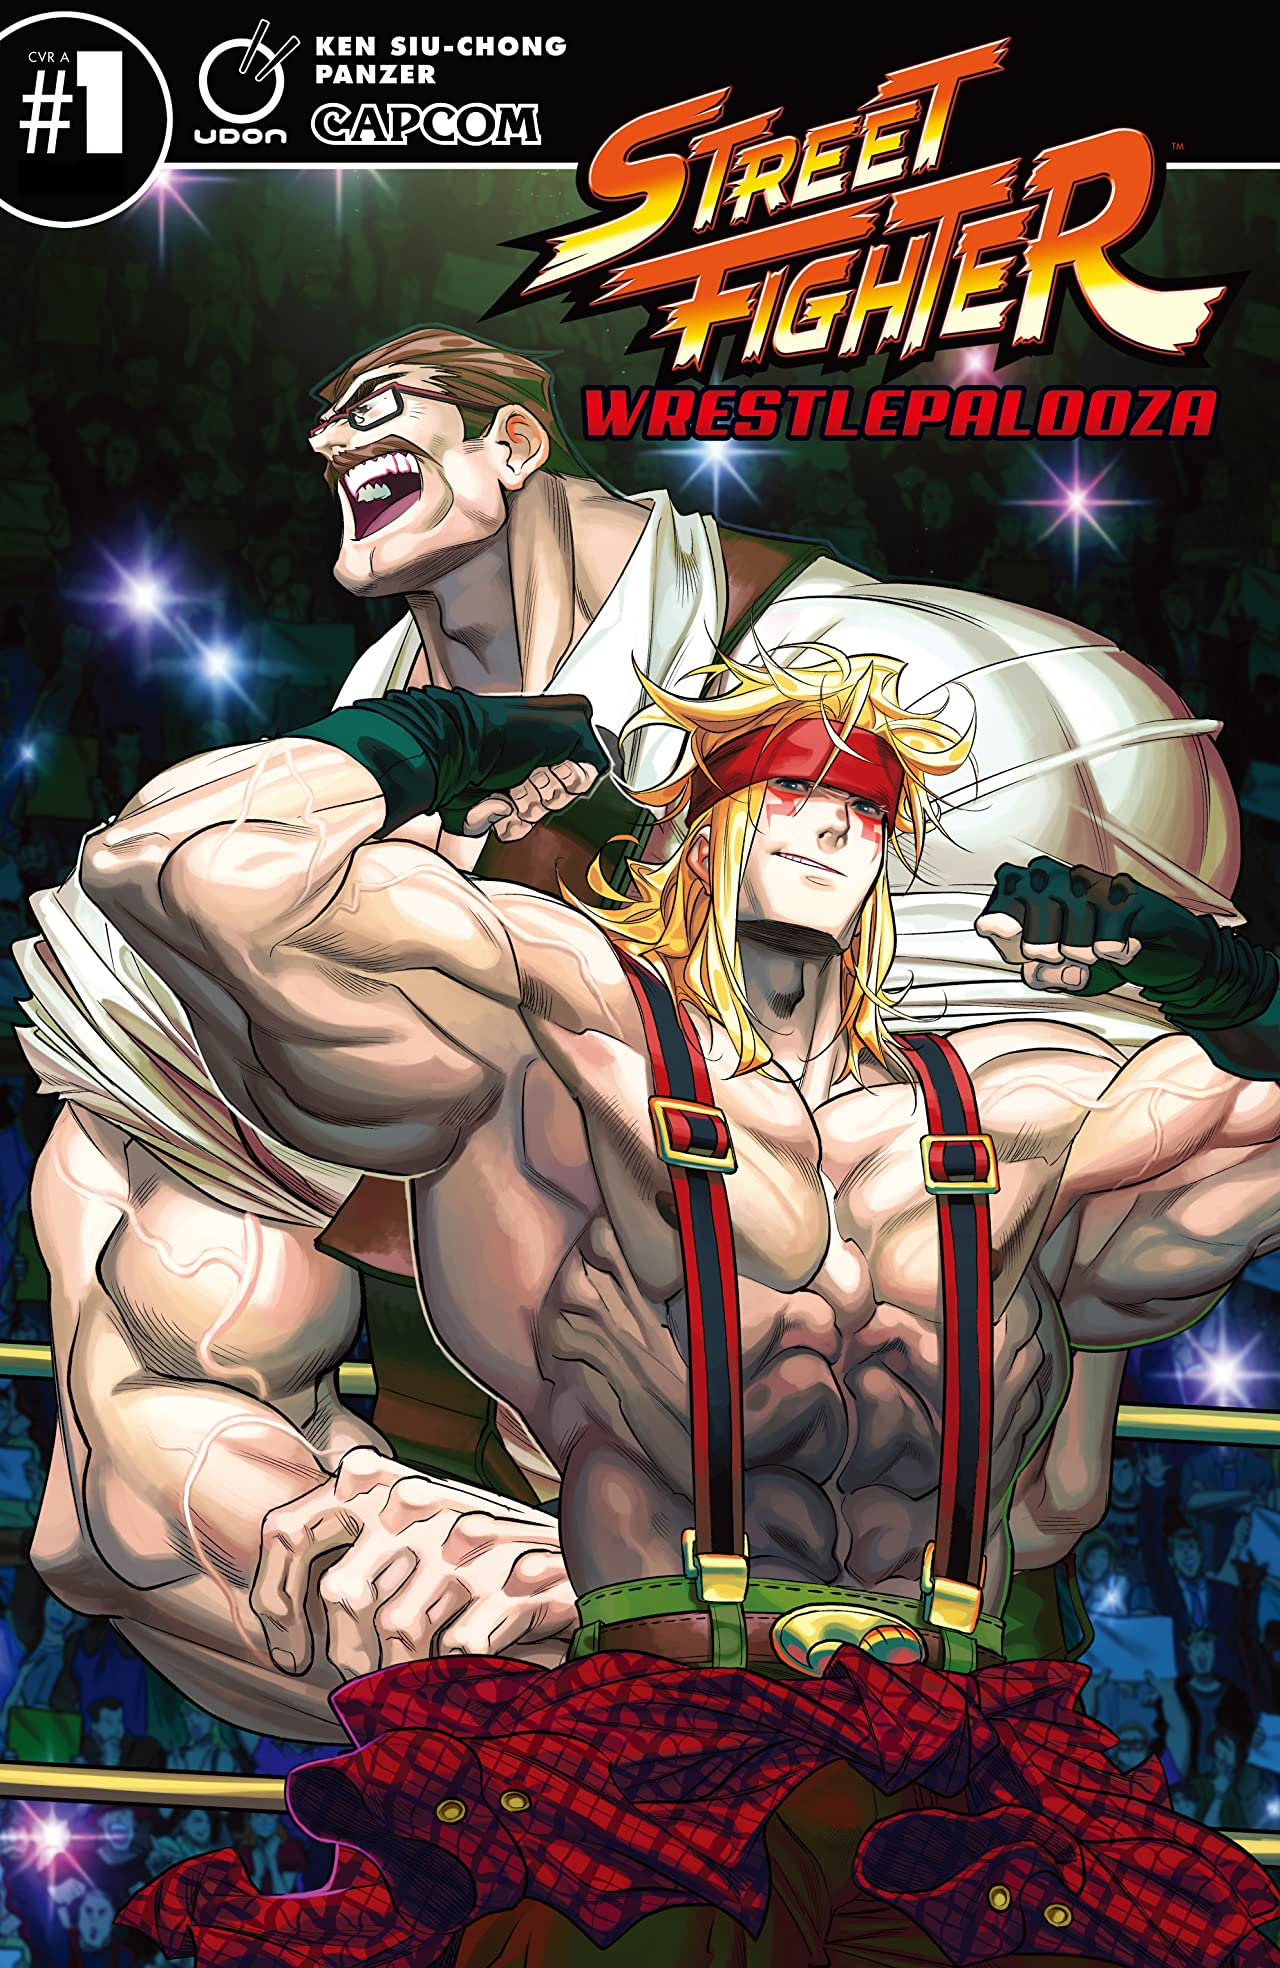 Street Fighter: Wrestlepalooza No.1